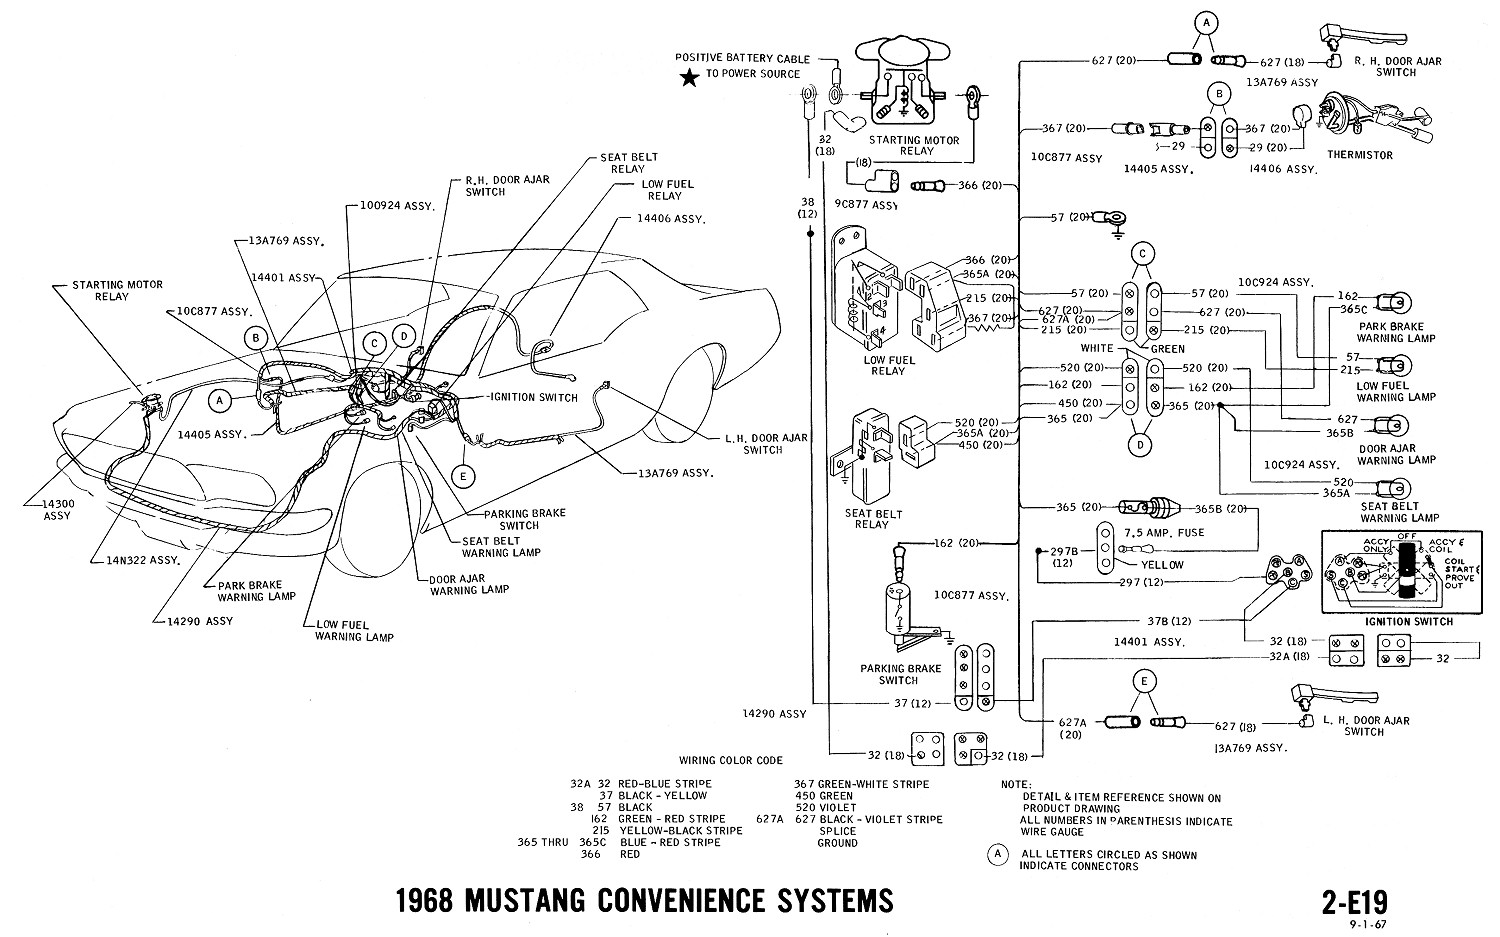 wiring diagram for 1996 ford mustang convertible